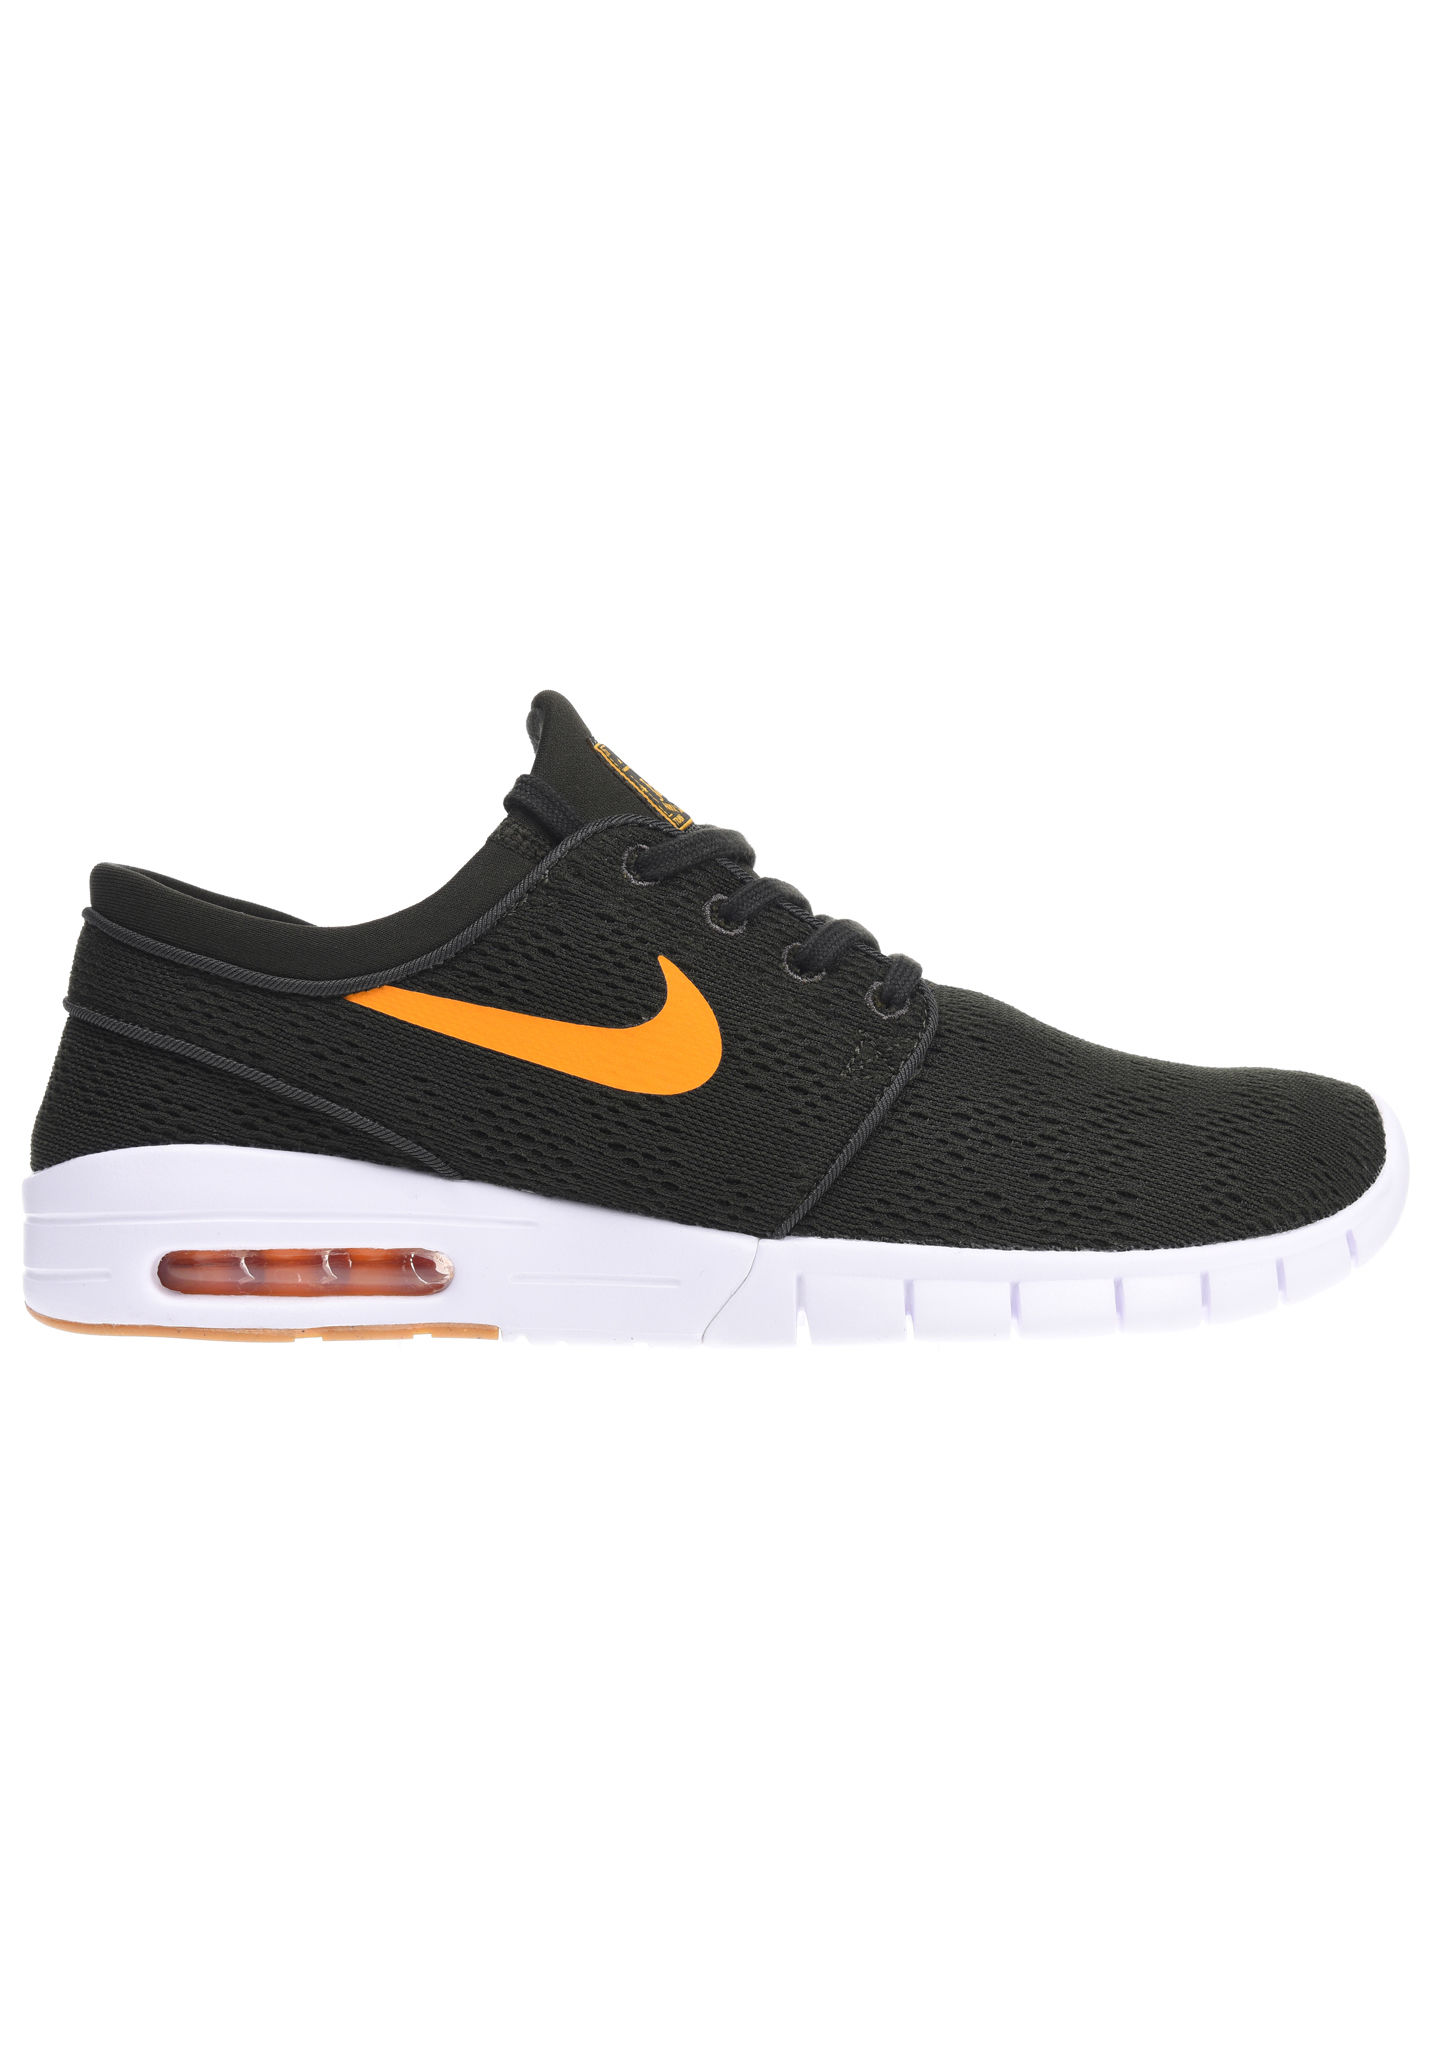 buy popular 85878 55e74 ... NIKE SB Stefan Janoski Max - Sneakers for Men - Green - Plan ...